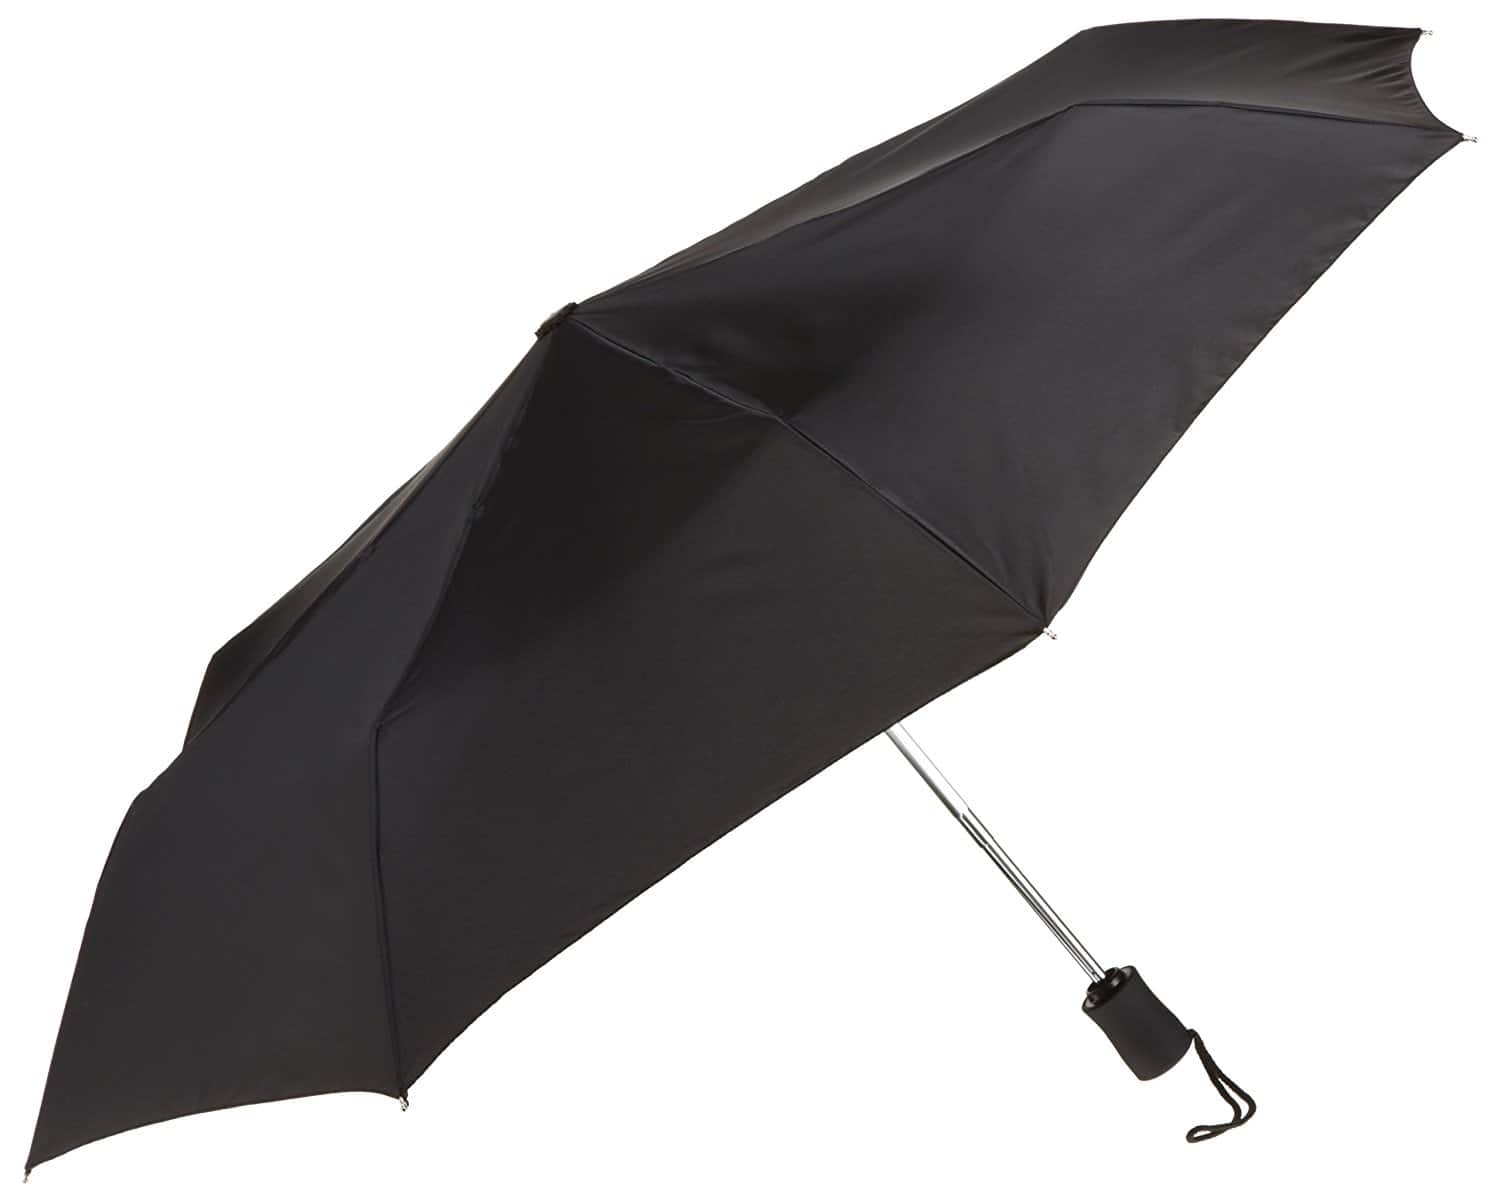 Lewis N. Clark Compact & Lightweight Travel Umbrella Opens & Closes Automatically, Black, One Size at its best price $9.99 @amazon, Walmart